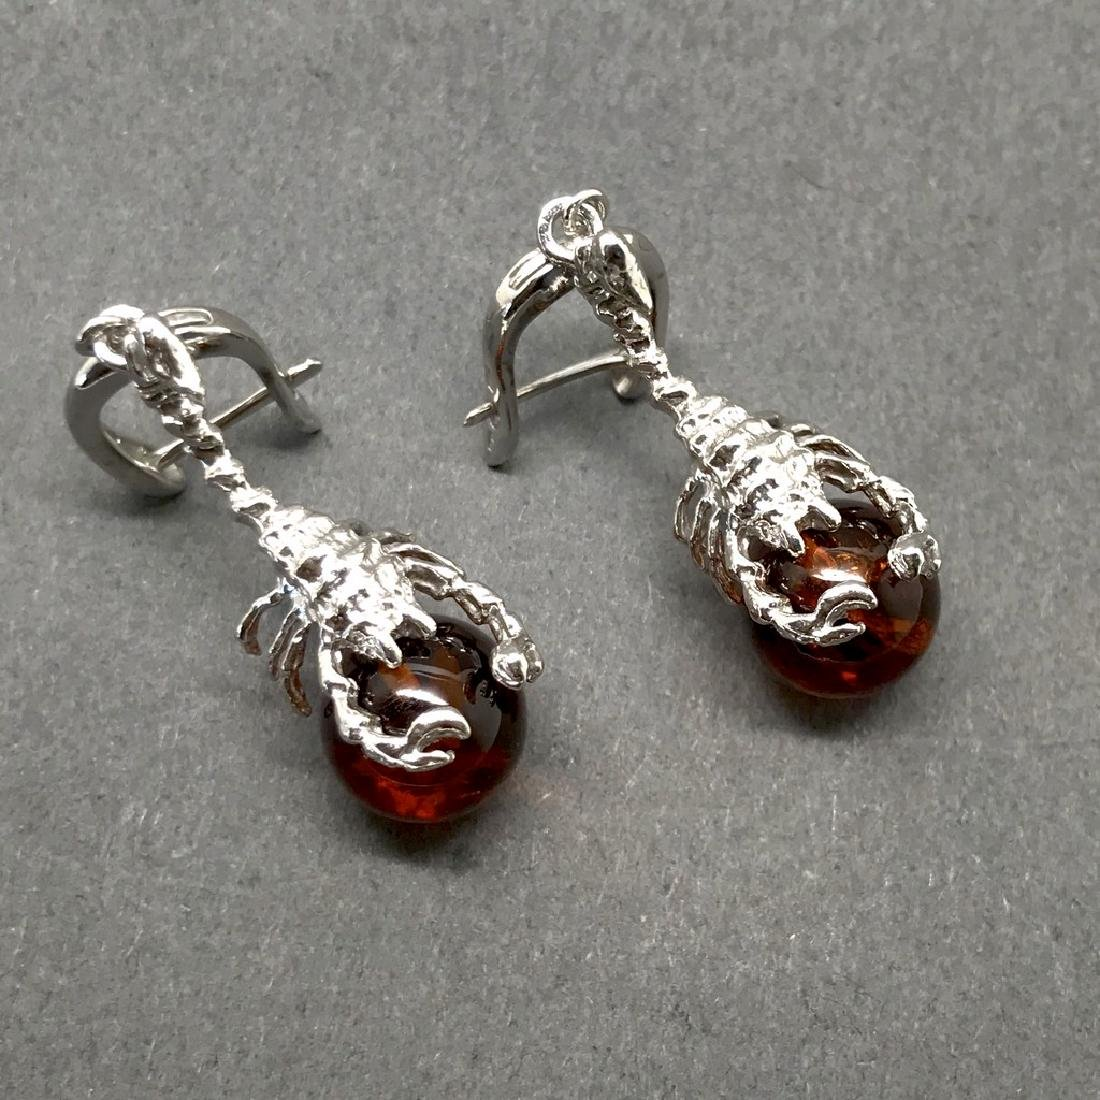 Sterling silver 925 earrings with Baltic amber balls - 5